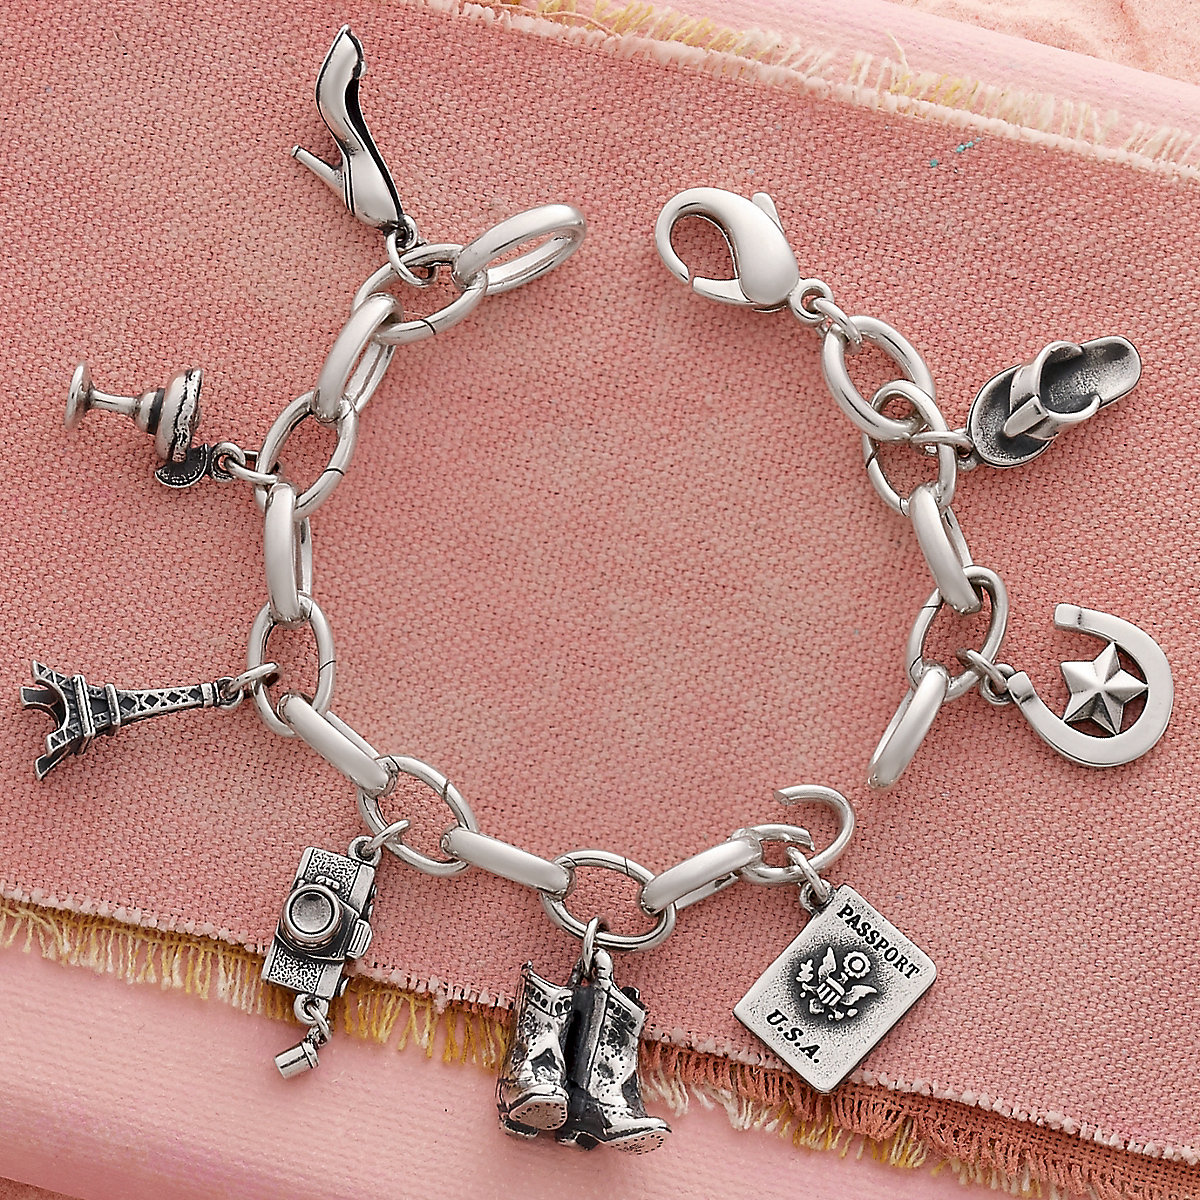 5b1bb44b2 Next. View Larger Image of Changeable Charm Bracelet ...